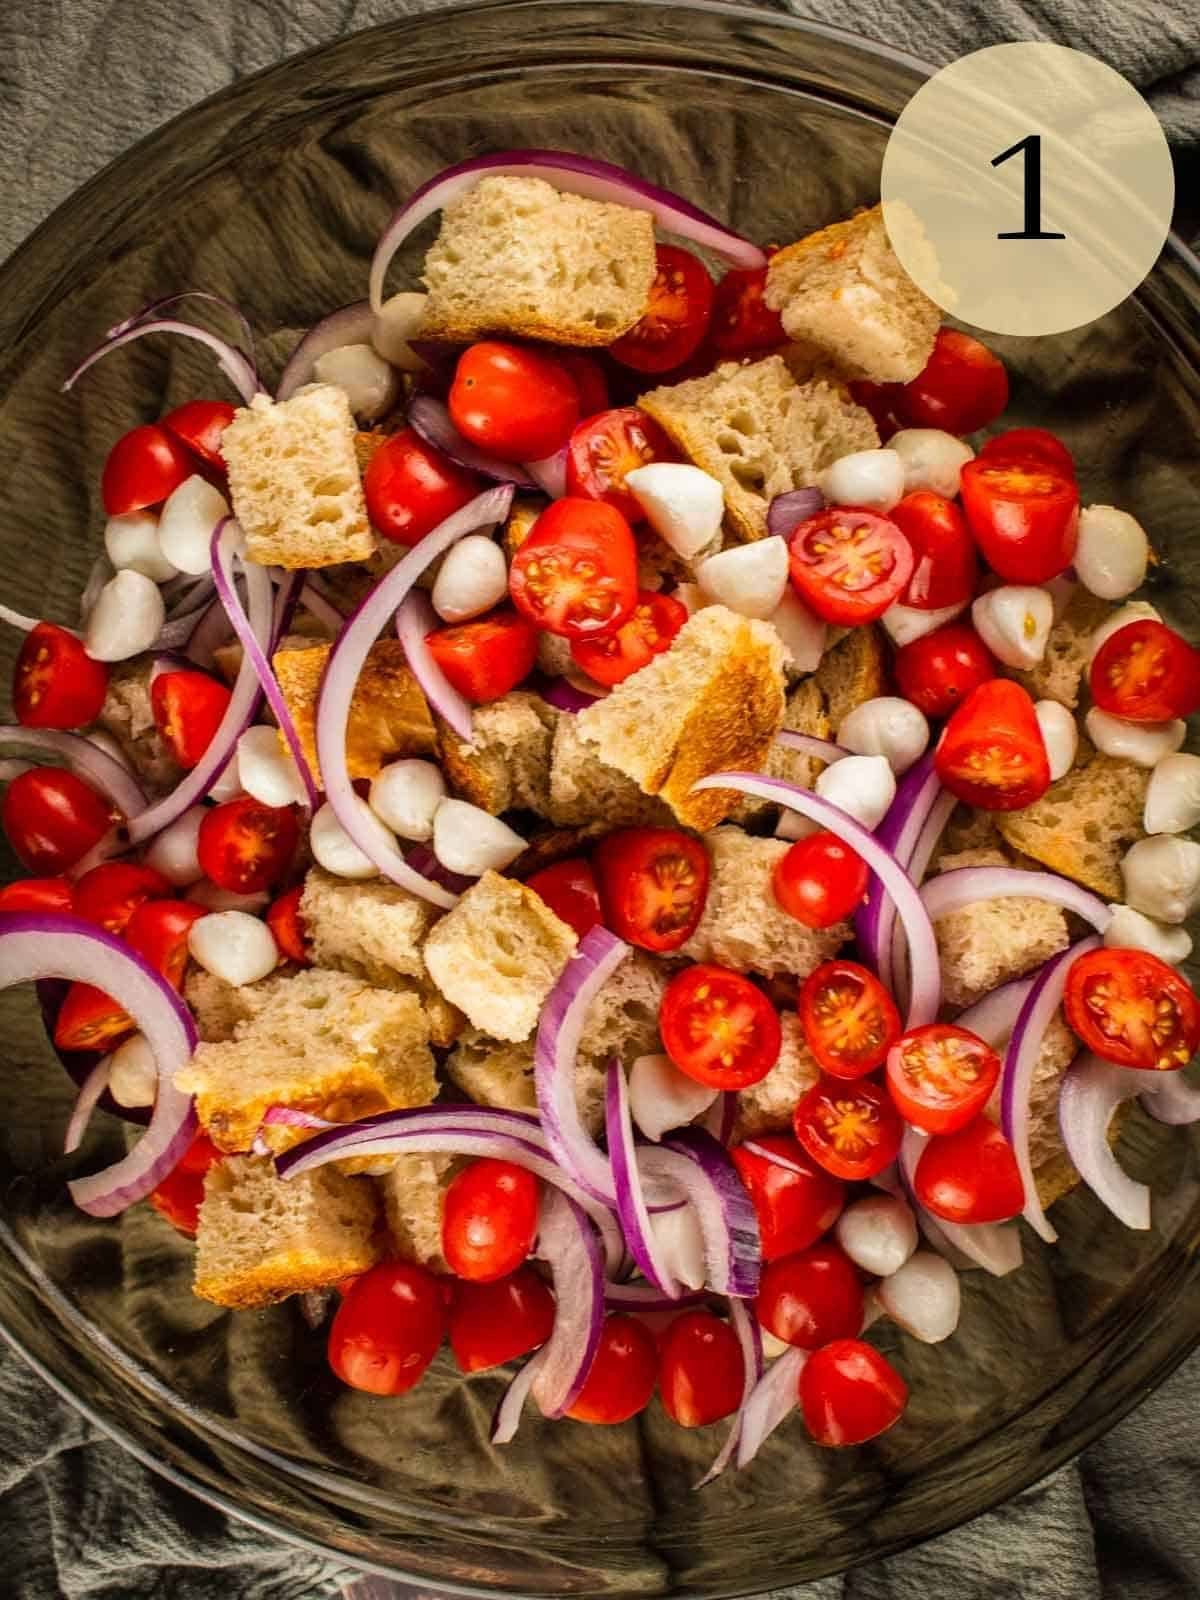 bowl with cubes of bread, sliced red onion, halved grape tomatoes and mozzarella balls